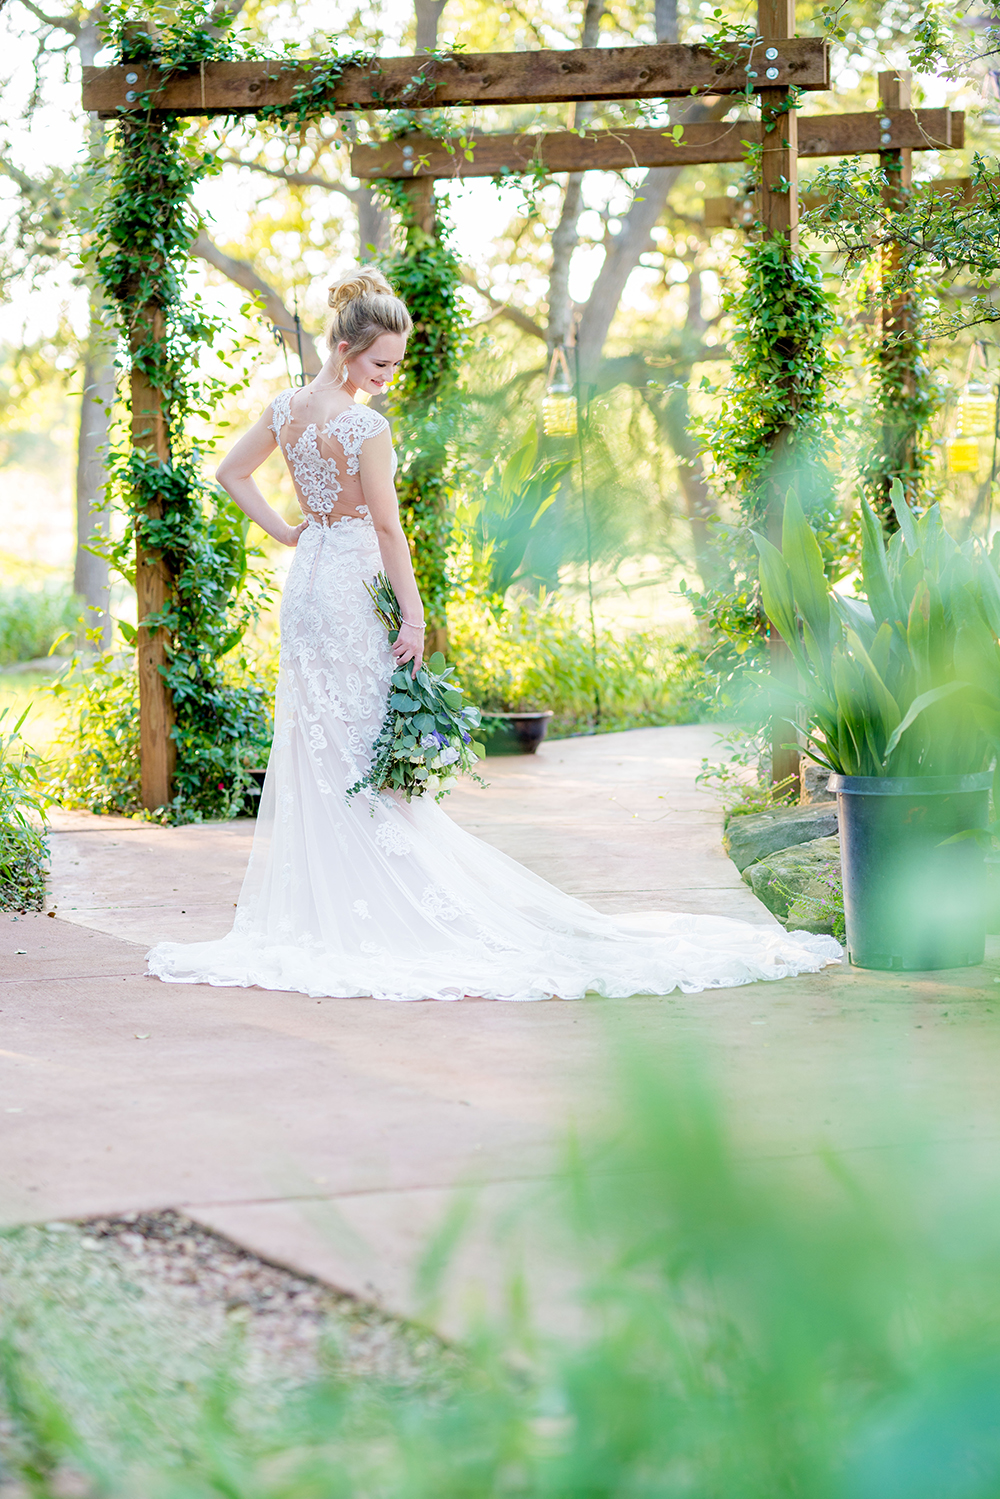 outdoor spaces for photos at country wedding venue near houston